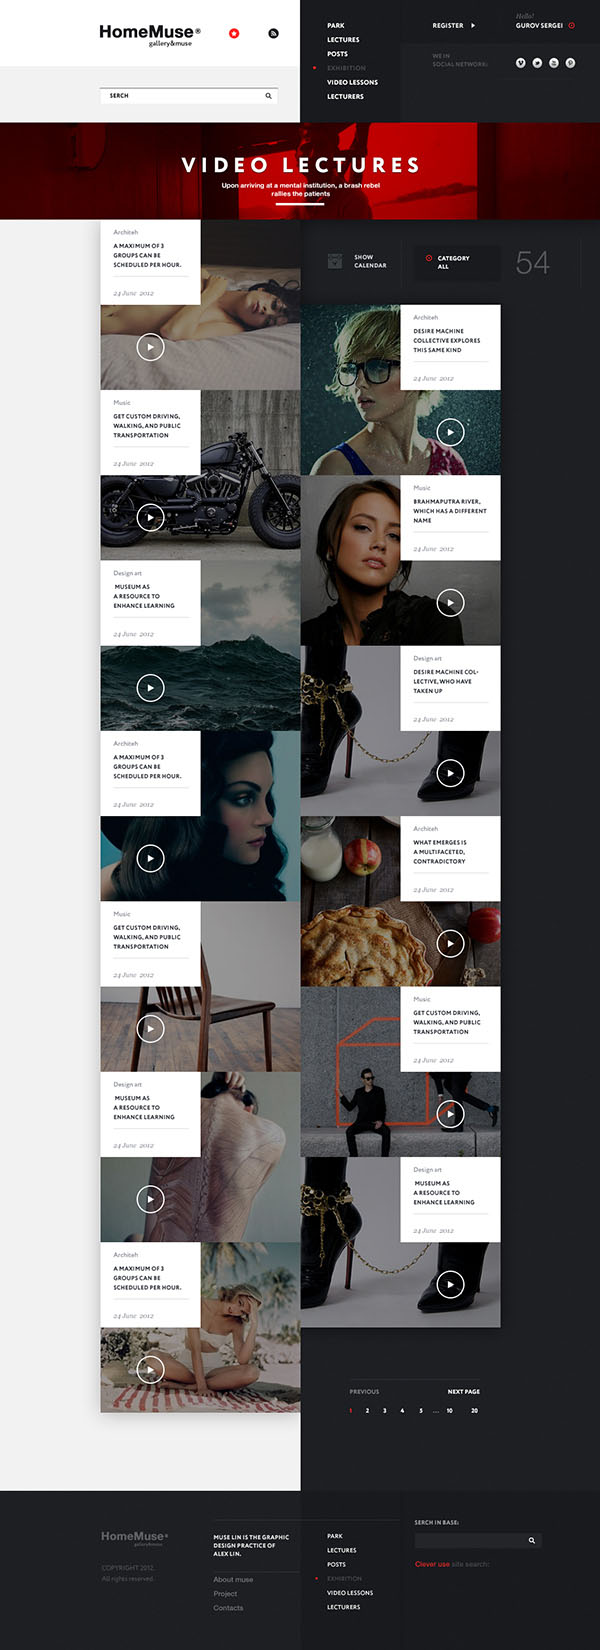 HomeMuse Gallery - Web Design by Sergei Gurov